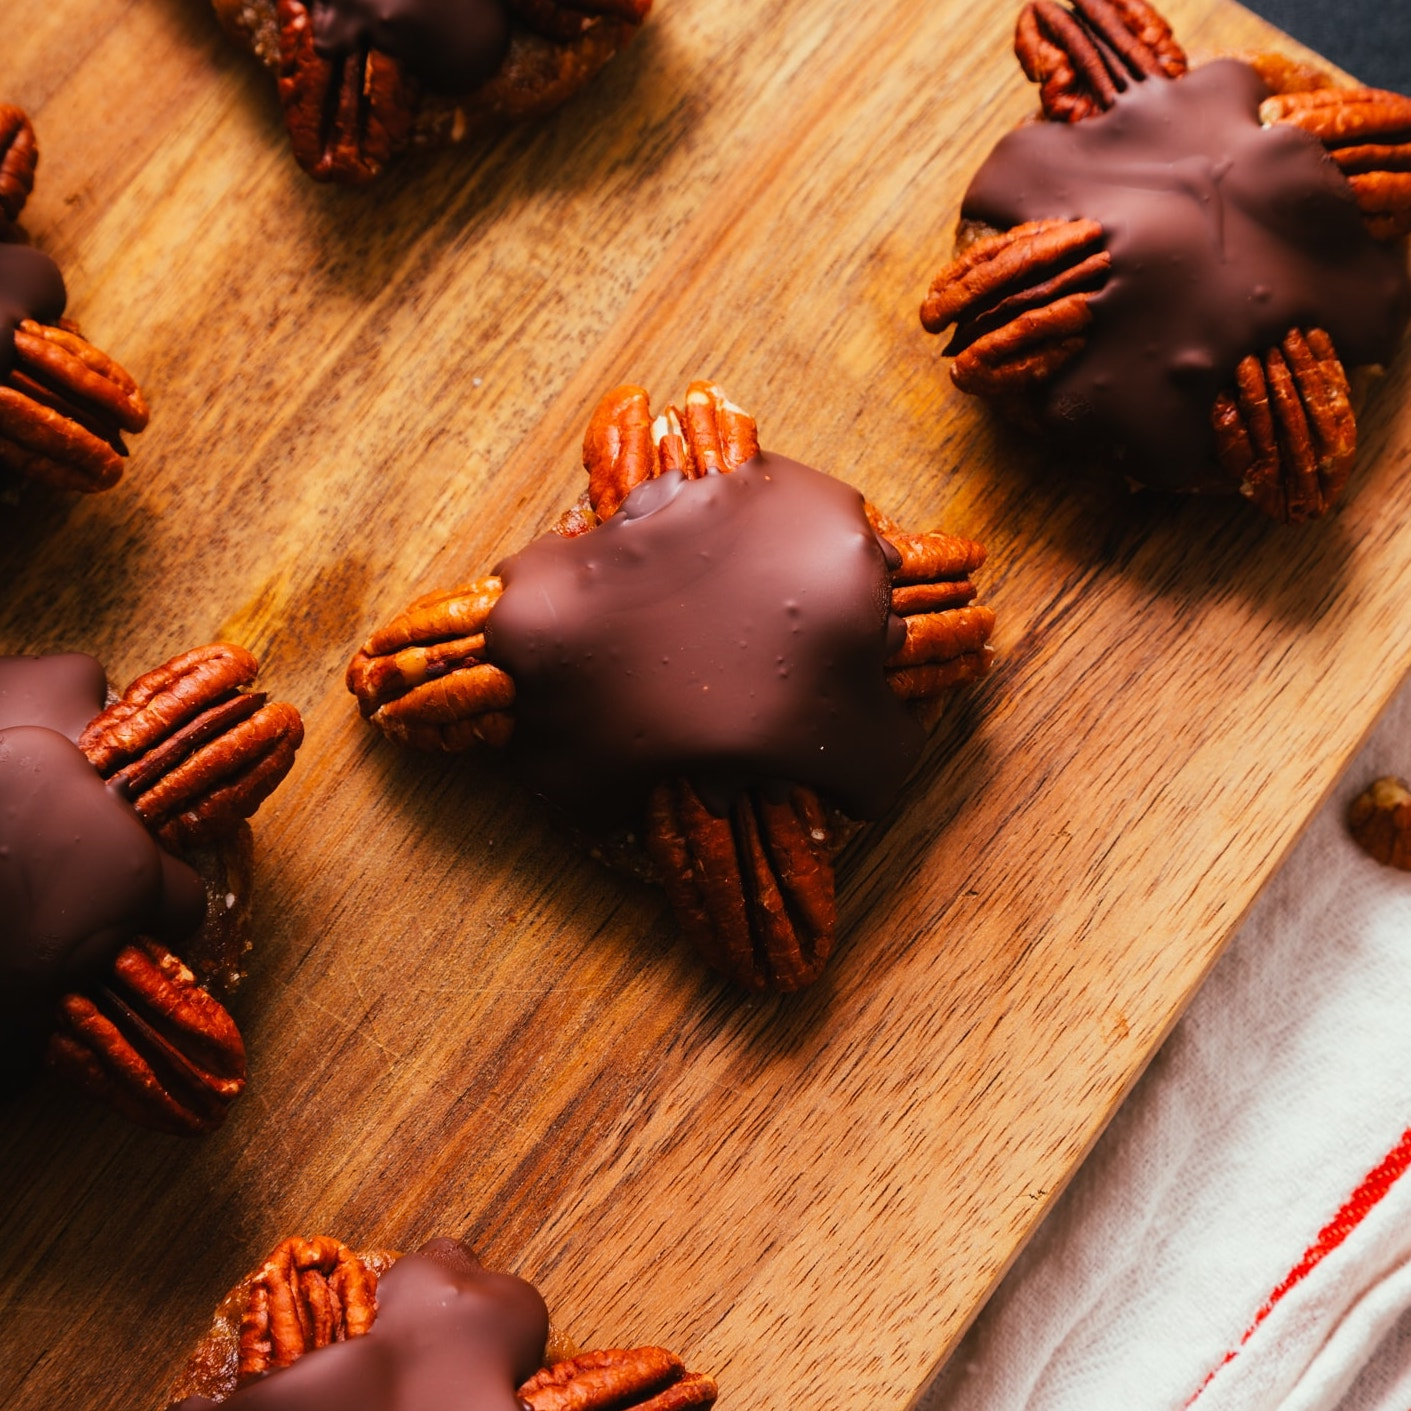 Delicious homemade Vegan Chocolate Turtle Candies on a wood cutting board